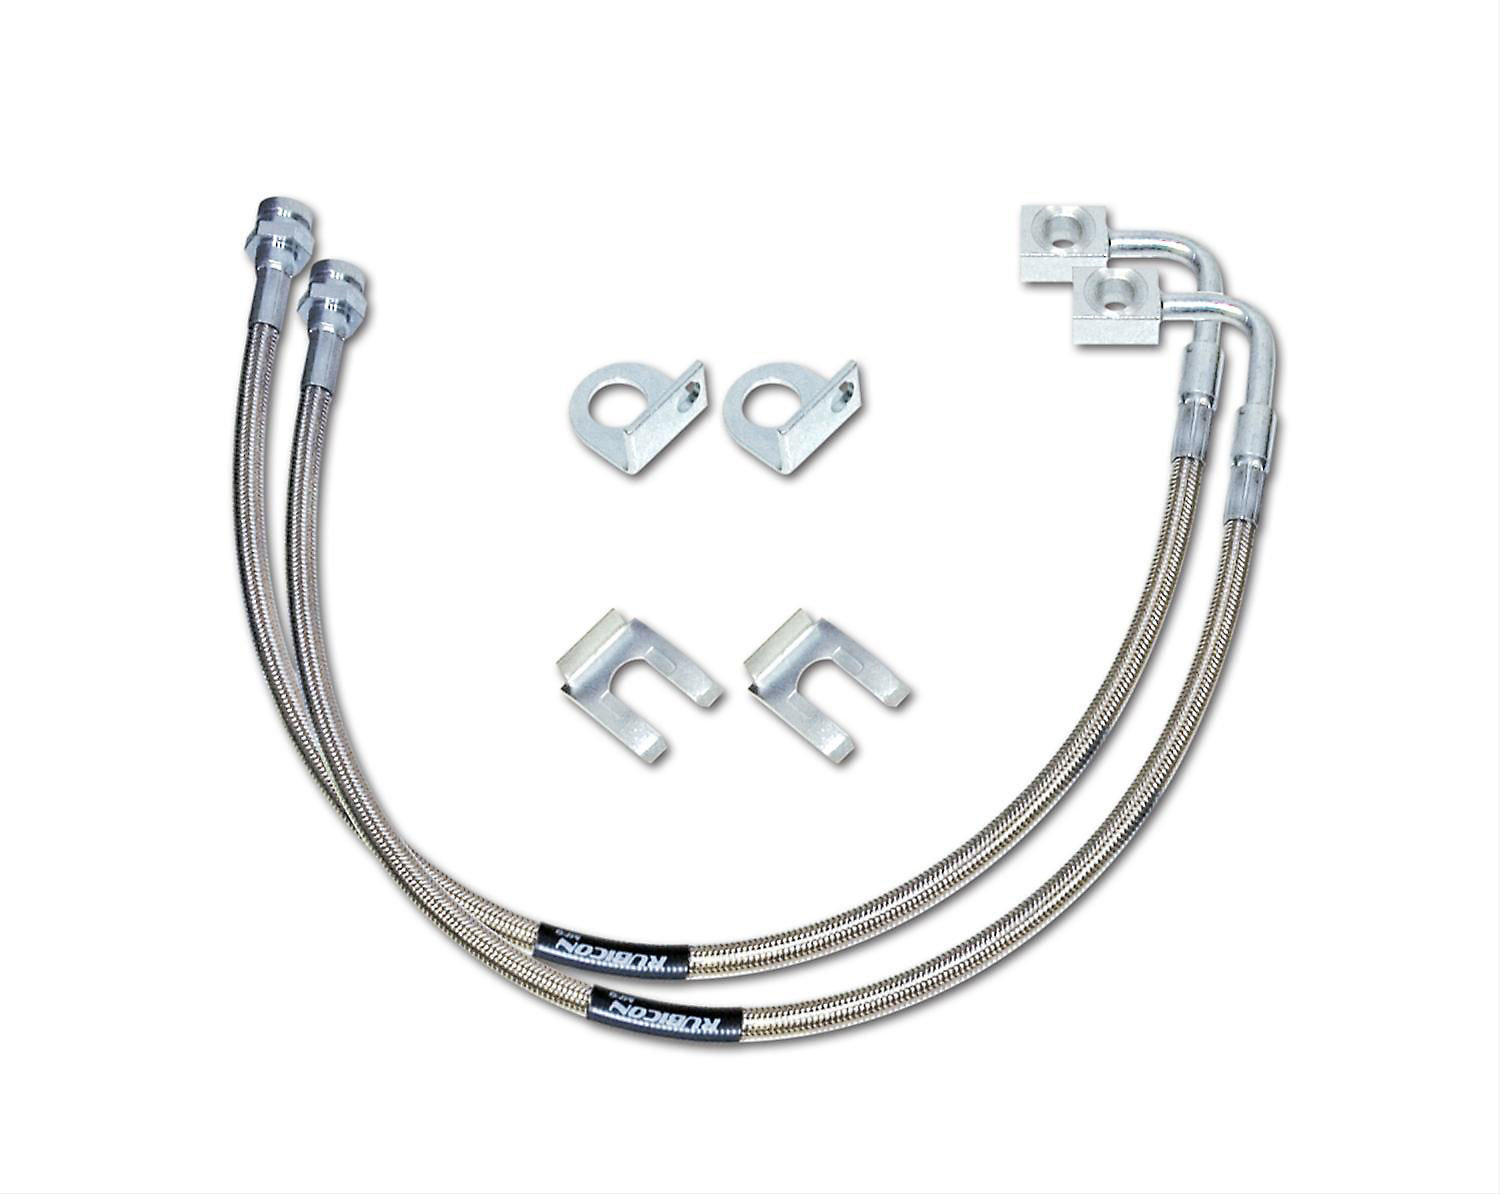 Rubicon Express RE15301 Front Braided Stainless Steel